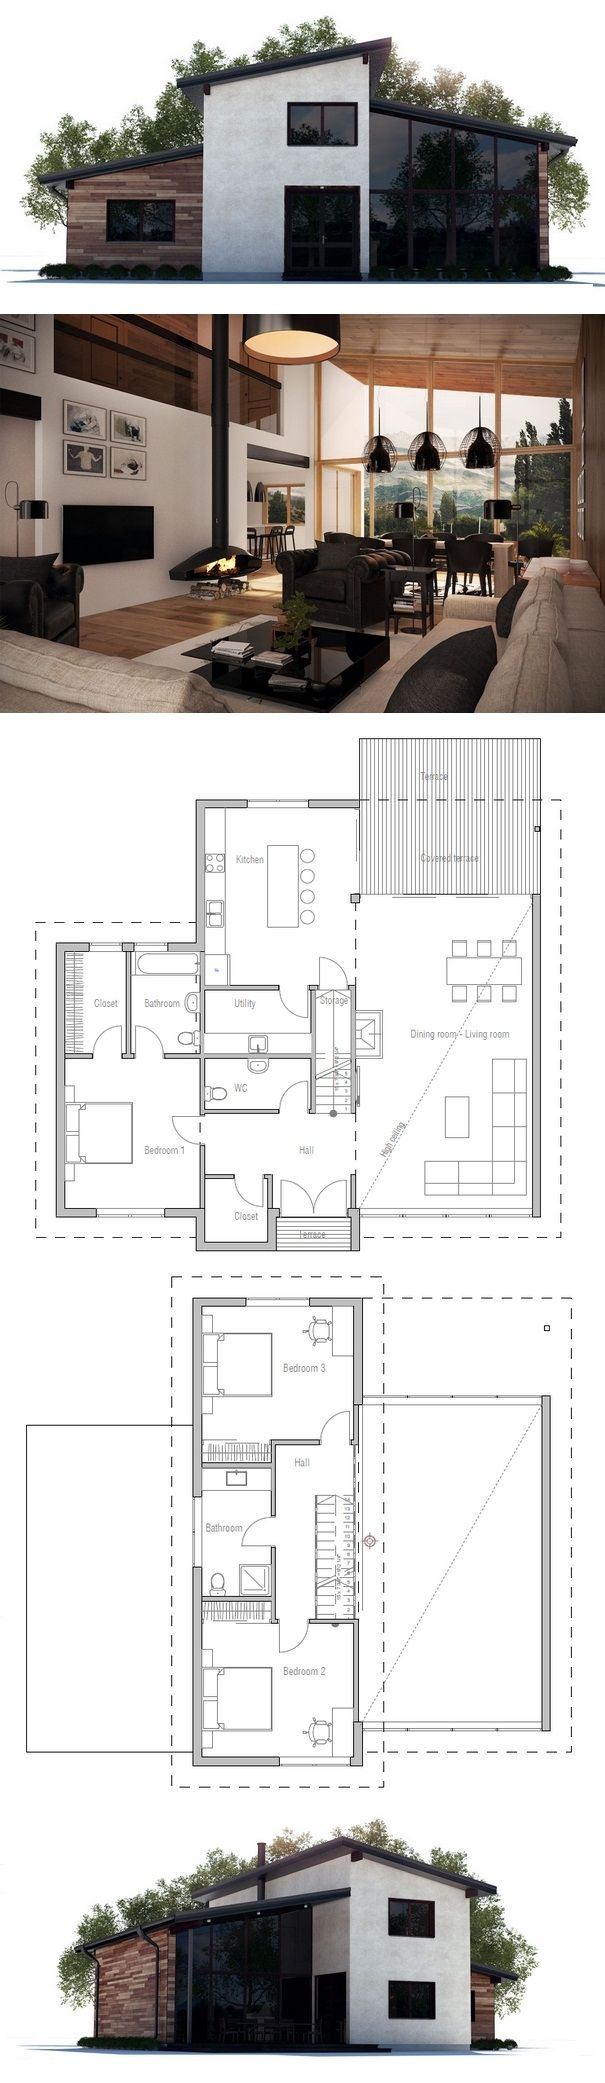 House plan from architecture pinterest for Concept home com